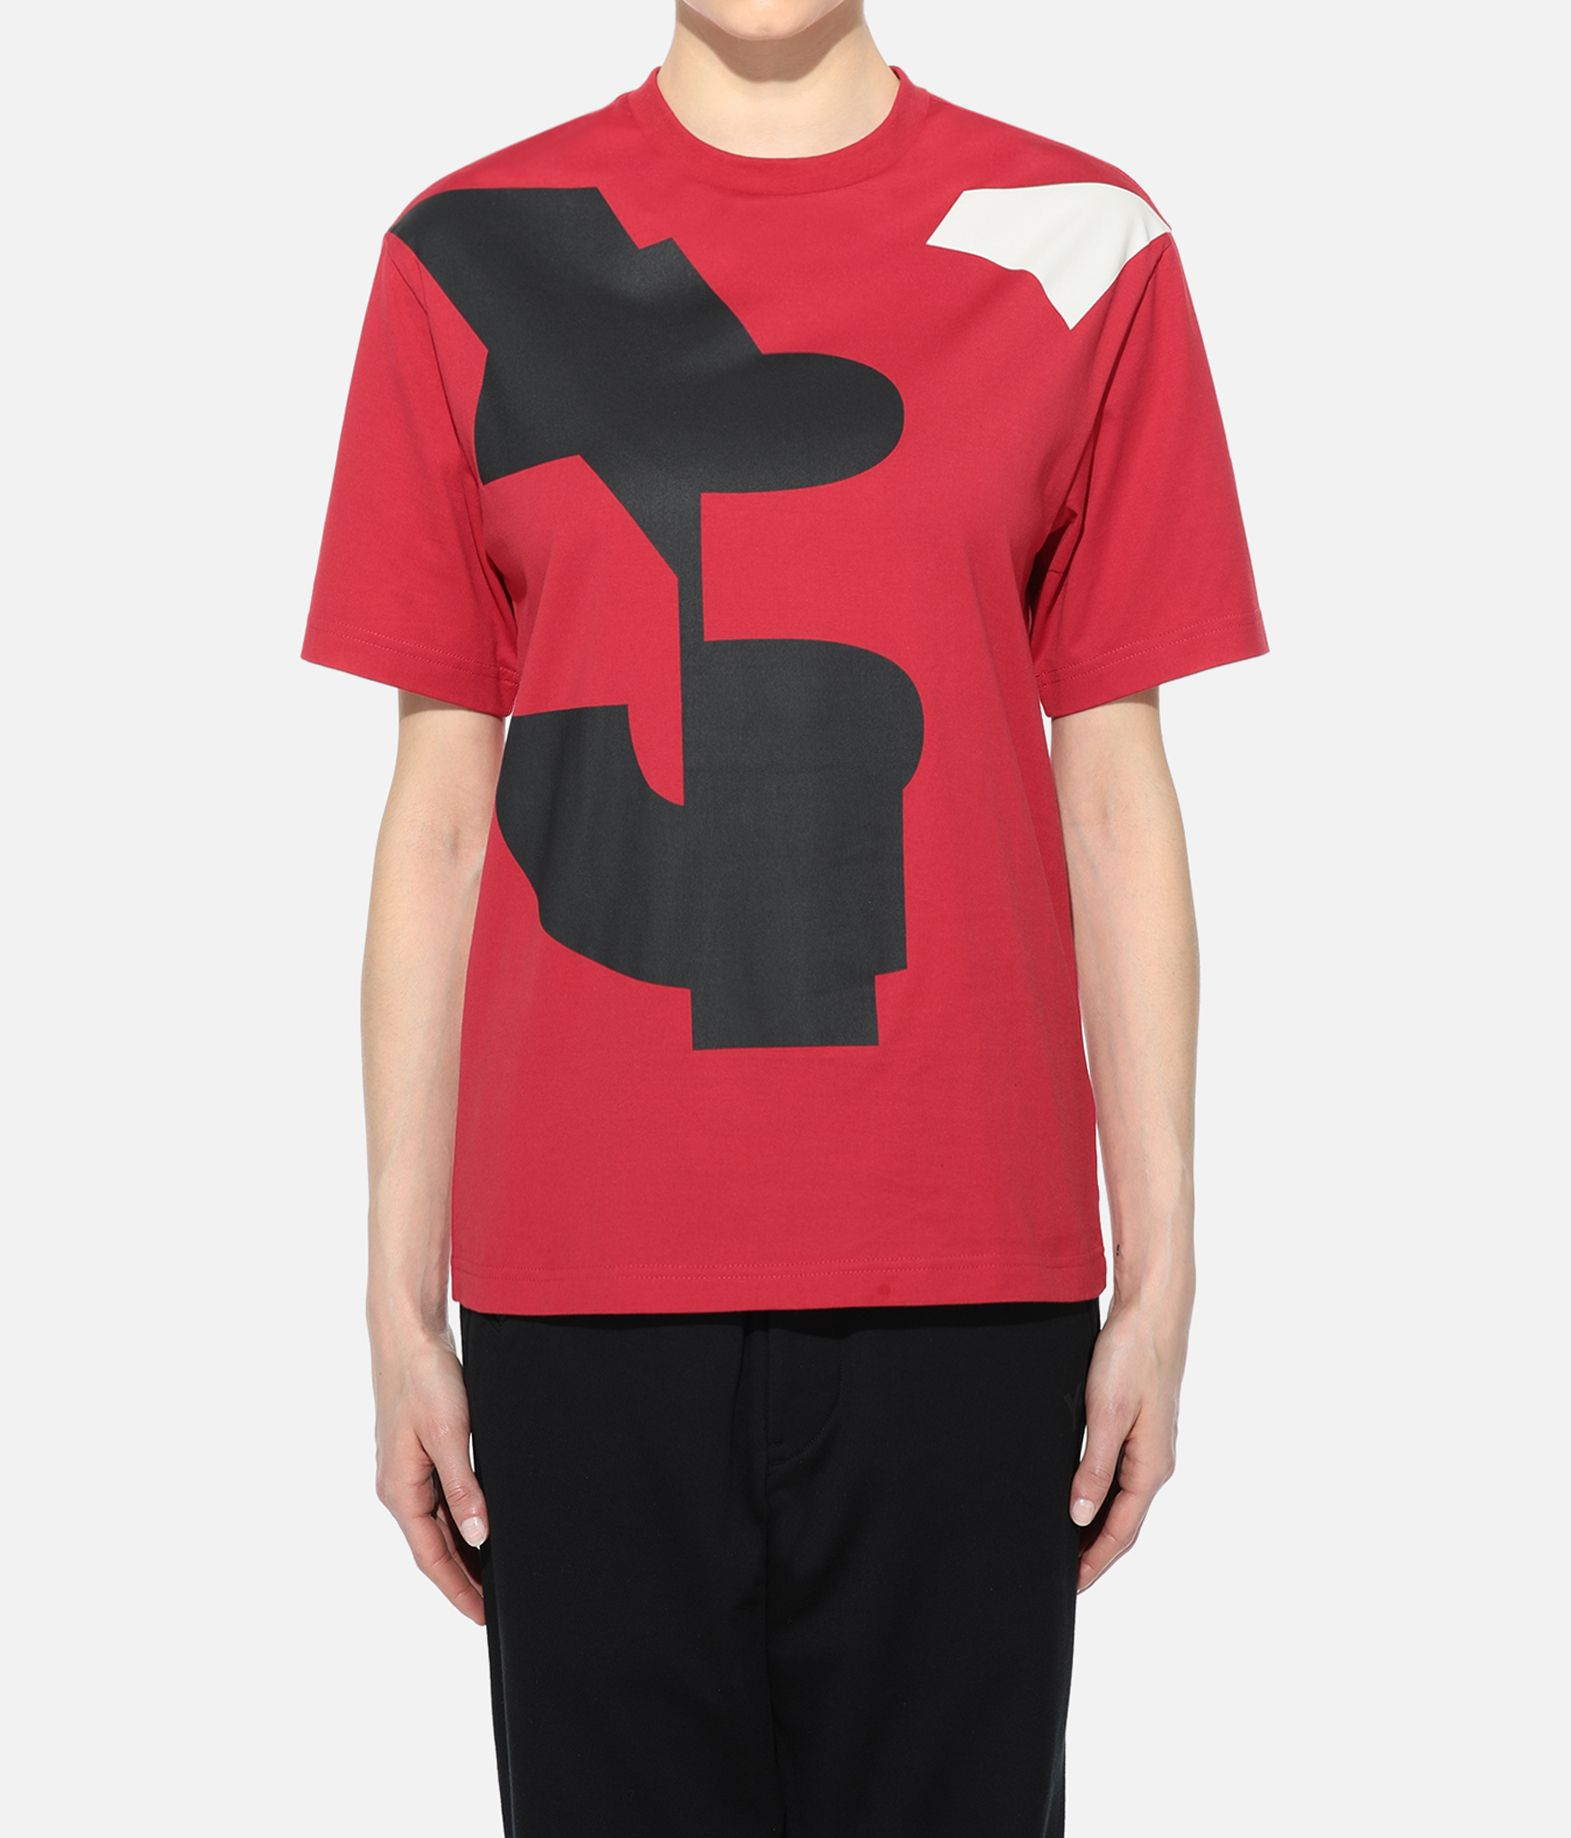 Y-3 Y-3 GRAPHIC TEE Short sleeve t-shirt Woman r